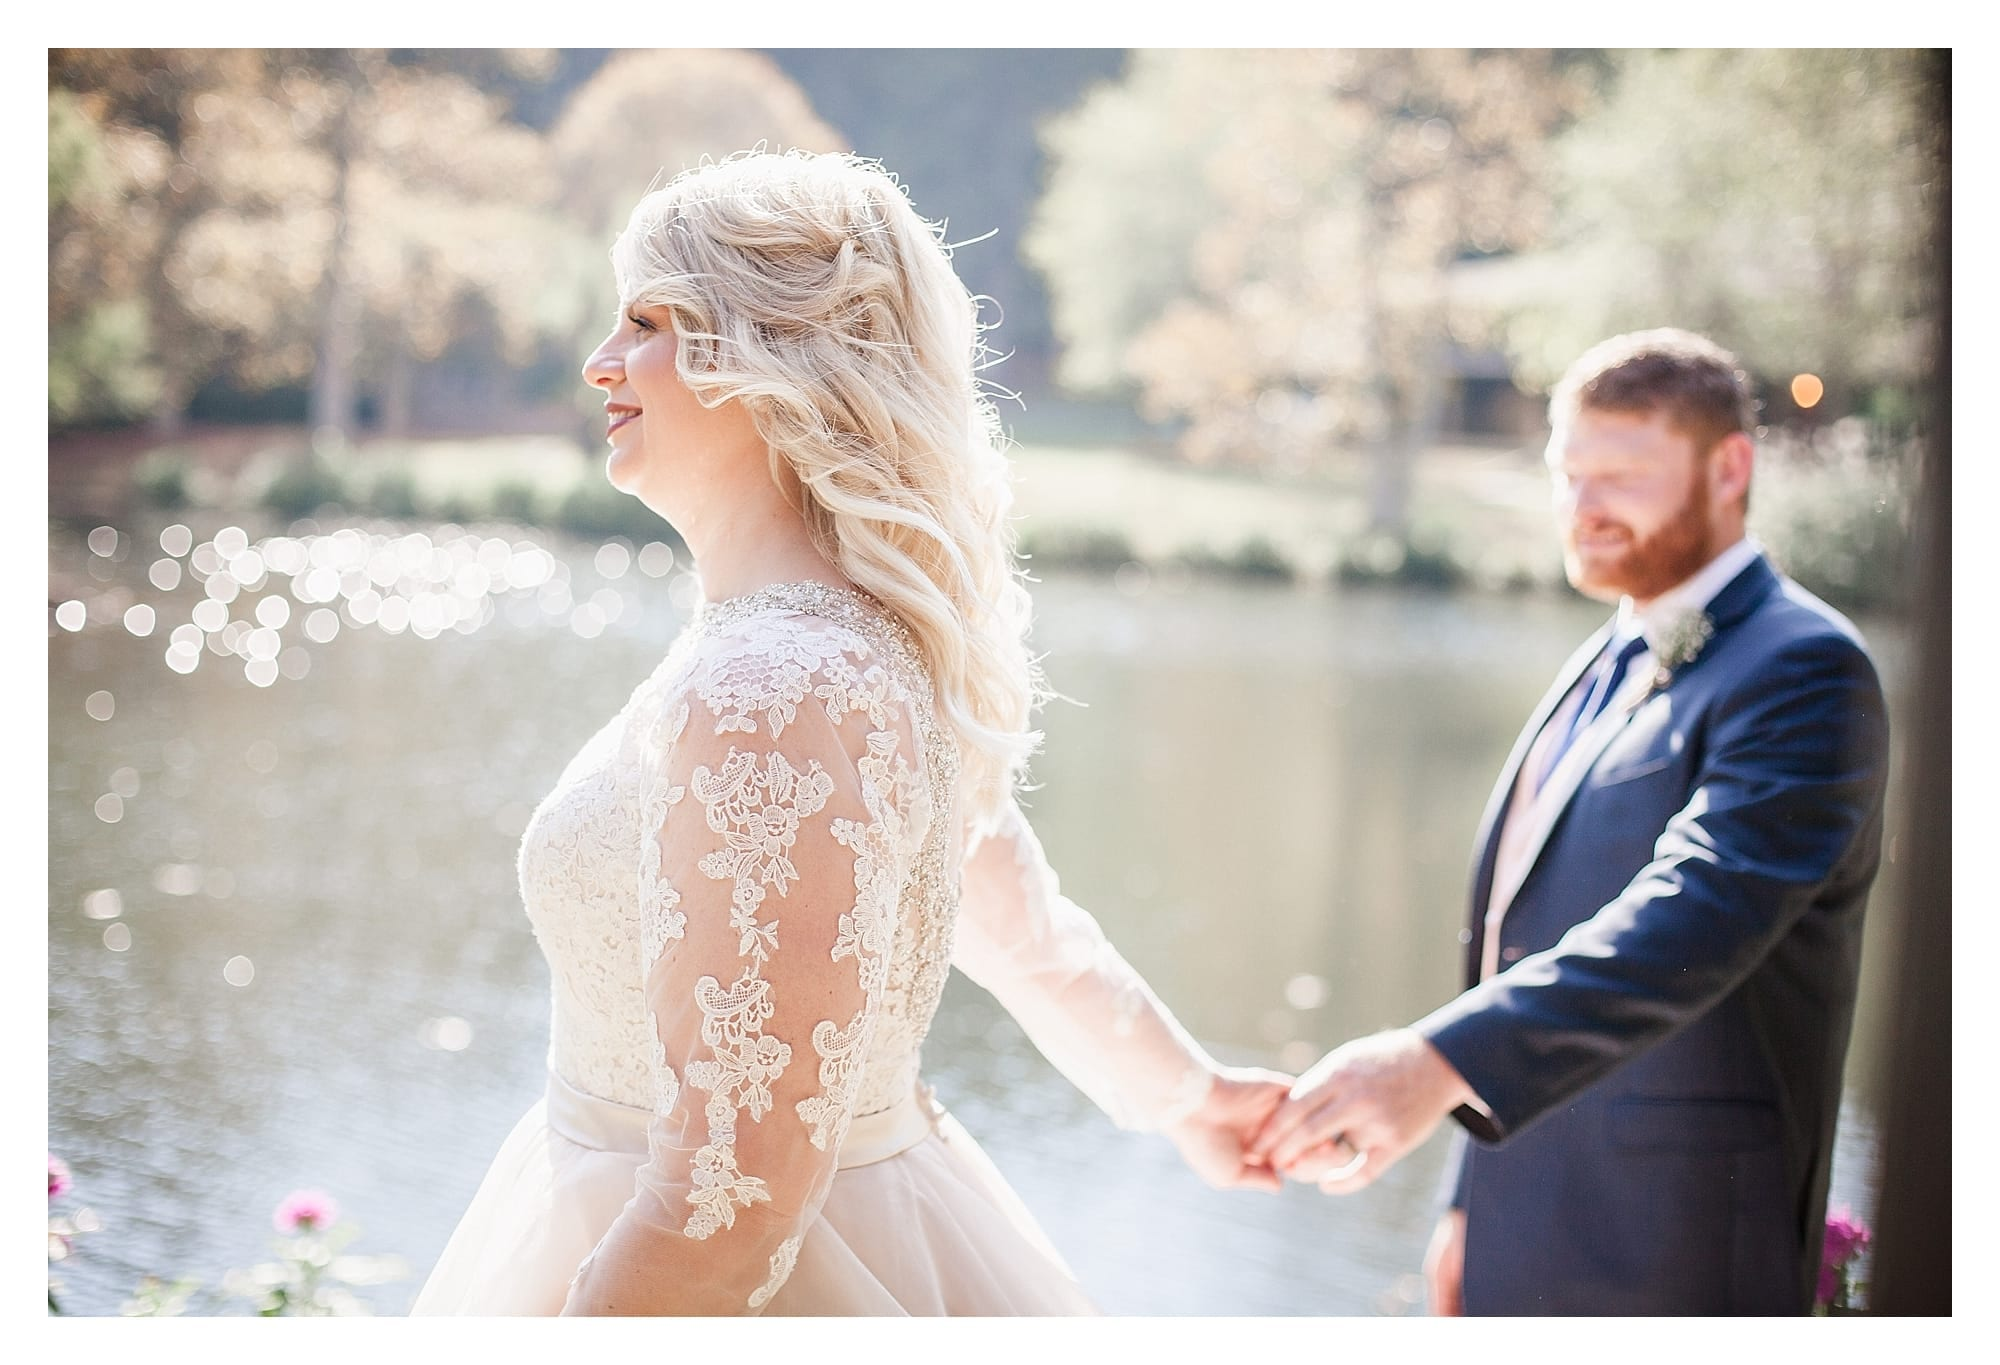 Gorgeous blush and ivory wedding gown